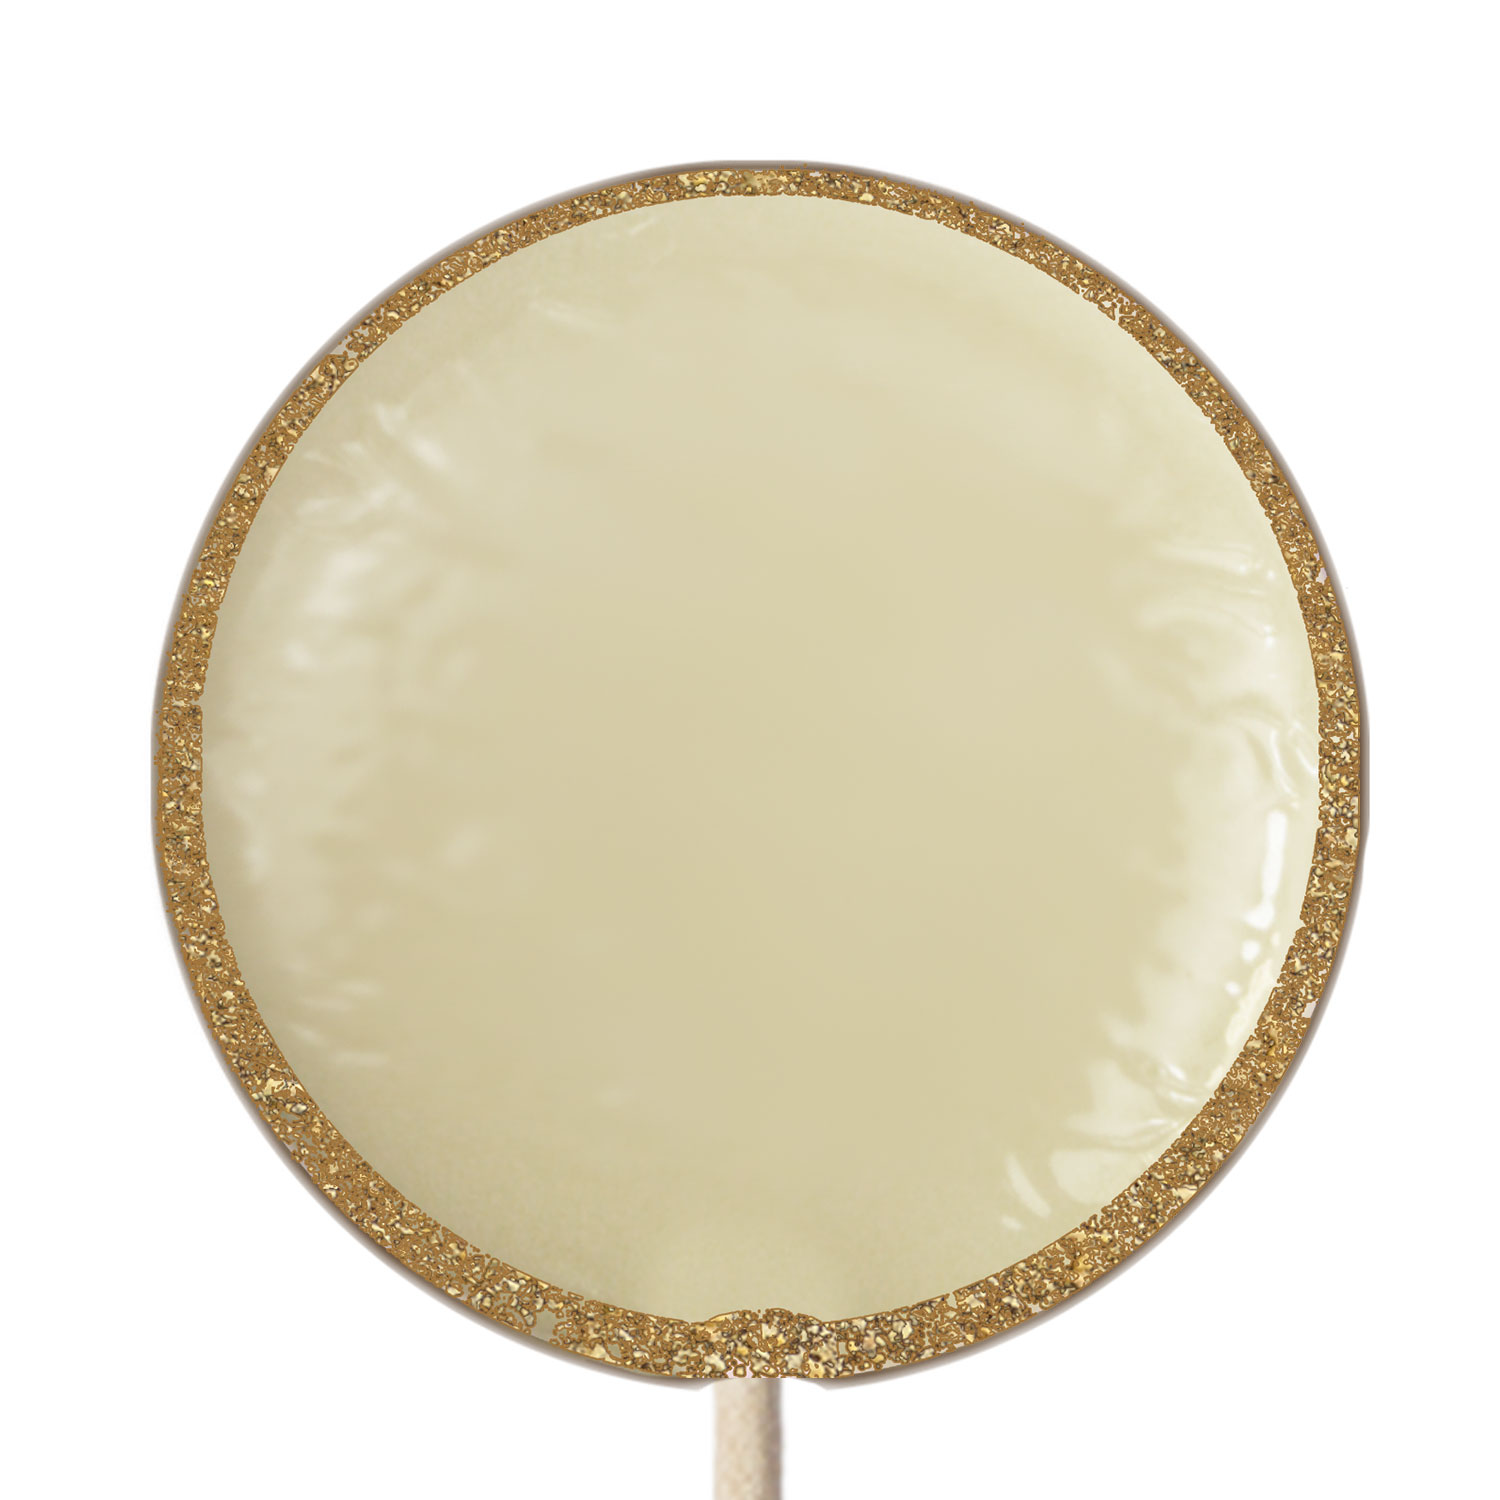 Dessert New York Cheesecake Lollipops: 12 Pack